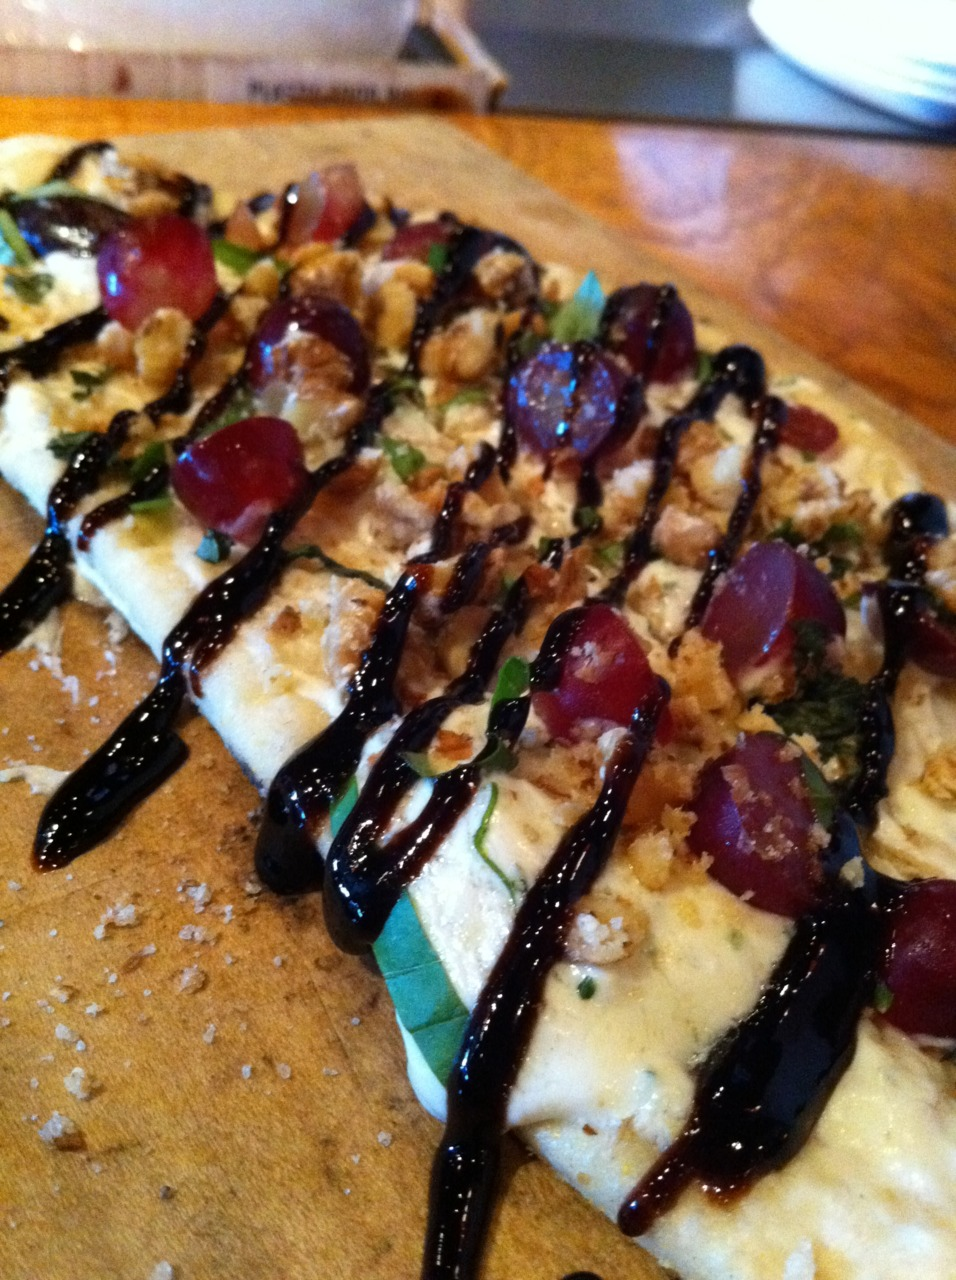 Sonoma Flatbread @ Fire & Vine, Virginia Beach, VA. Goat cheese mousse, red grapes, candied walnuts, balsamic syrup, fresh herbs, crispy wood-oven flatbread. This was very good. If you go during happy hour they are only $5! Definitely worth a visit.